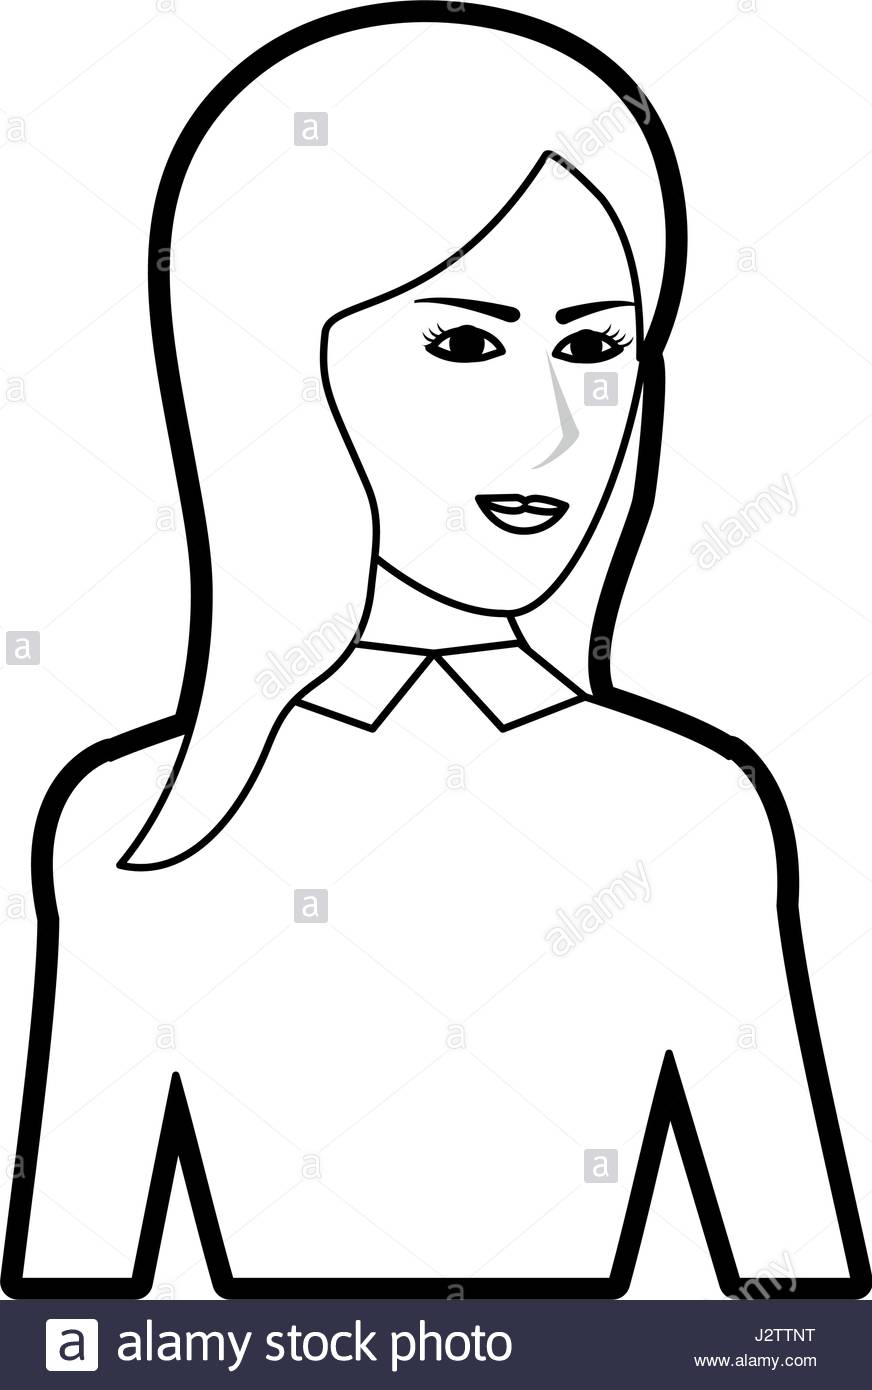 872x1390 Black Silhouette Cartoon Half Body Woman With Long Hair And Jacket